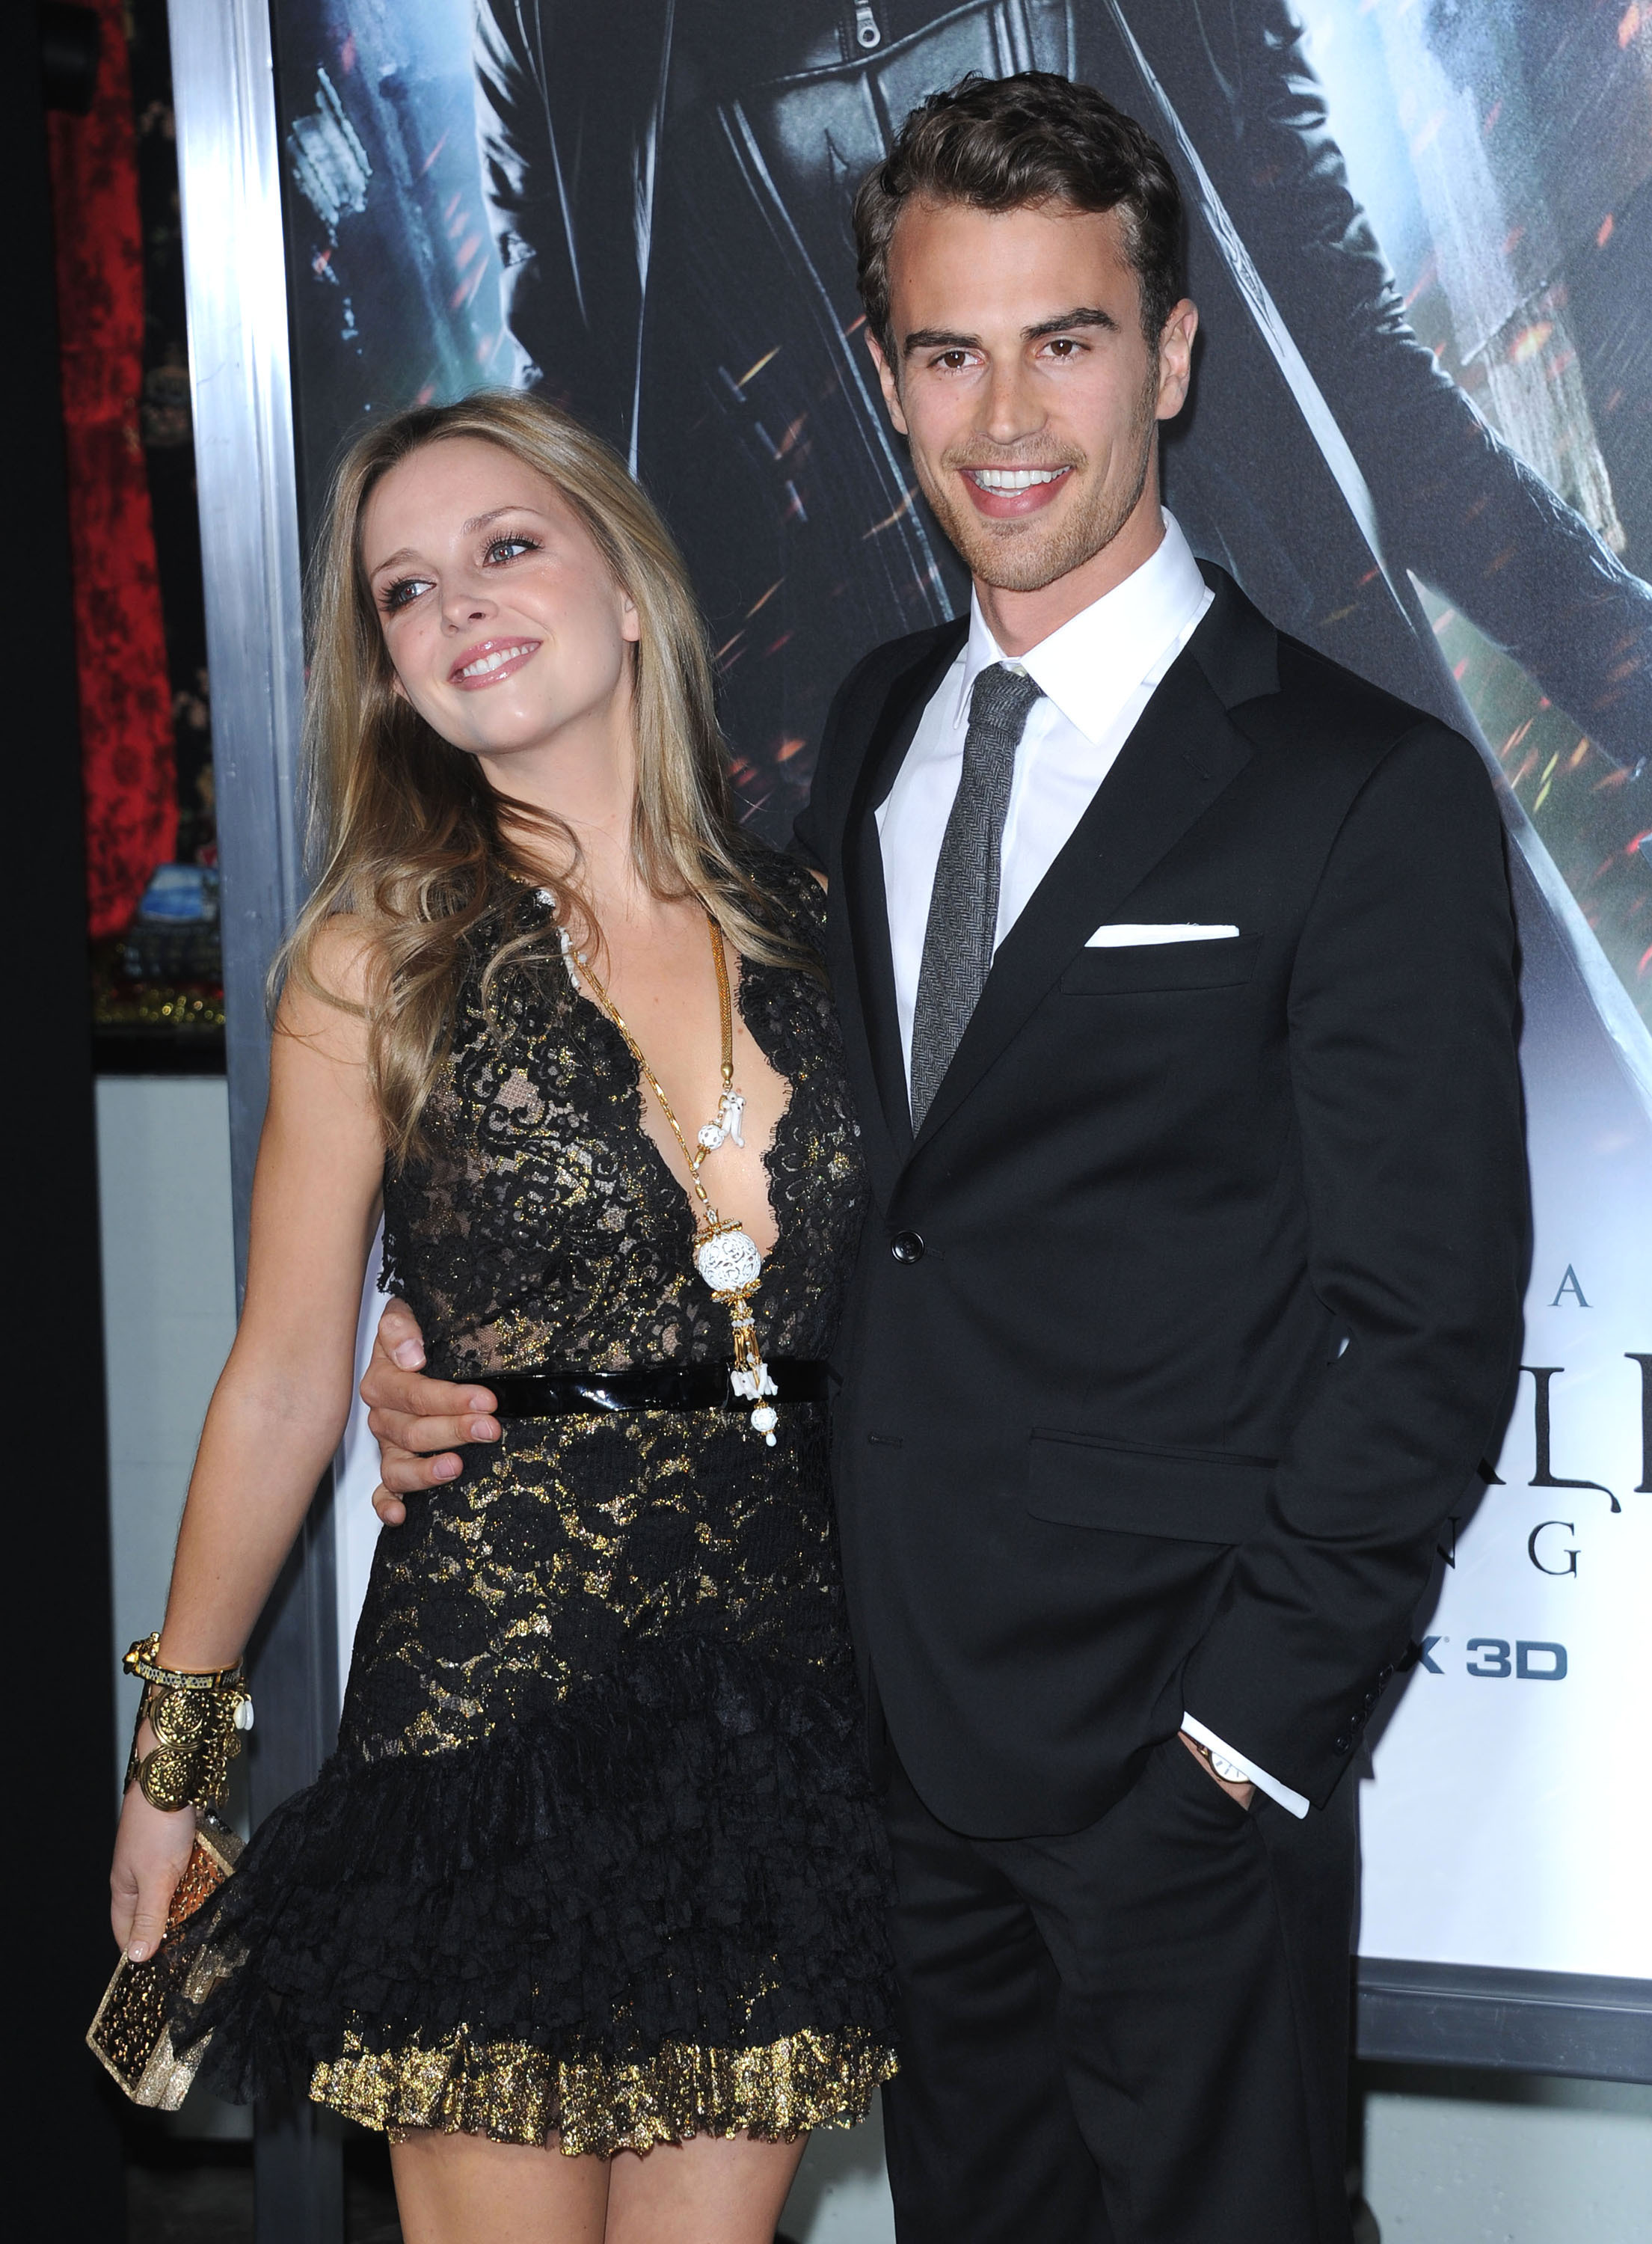 Theo James Girlfriend 2014 Theo james gir.